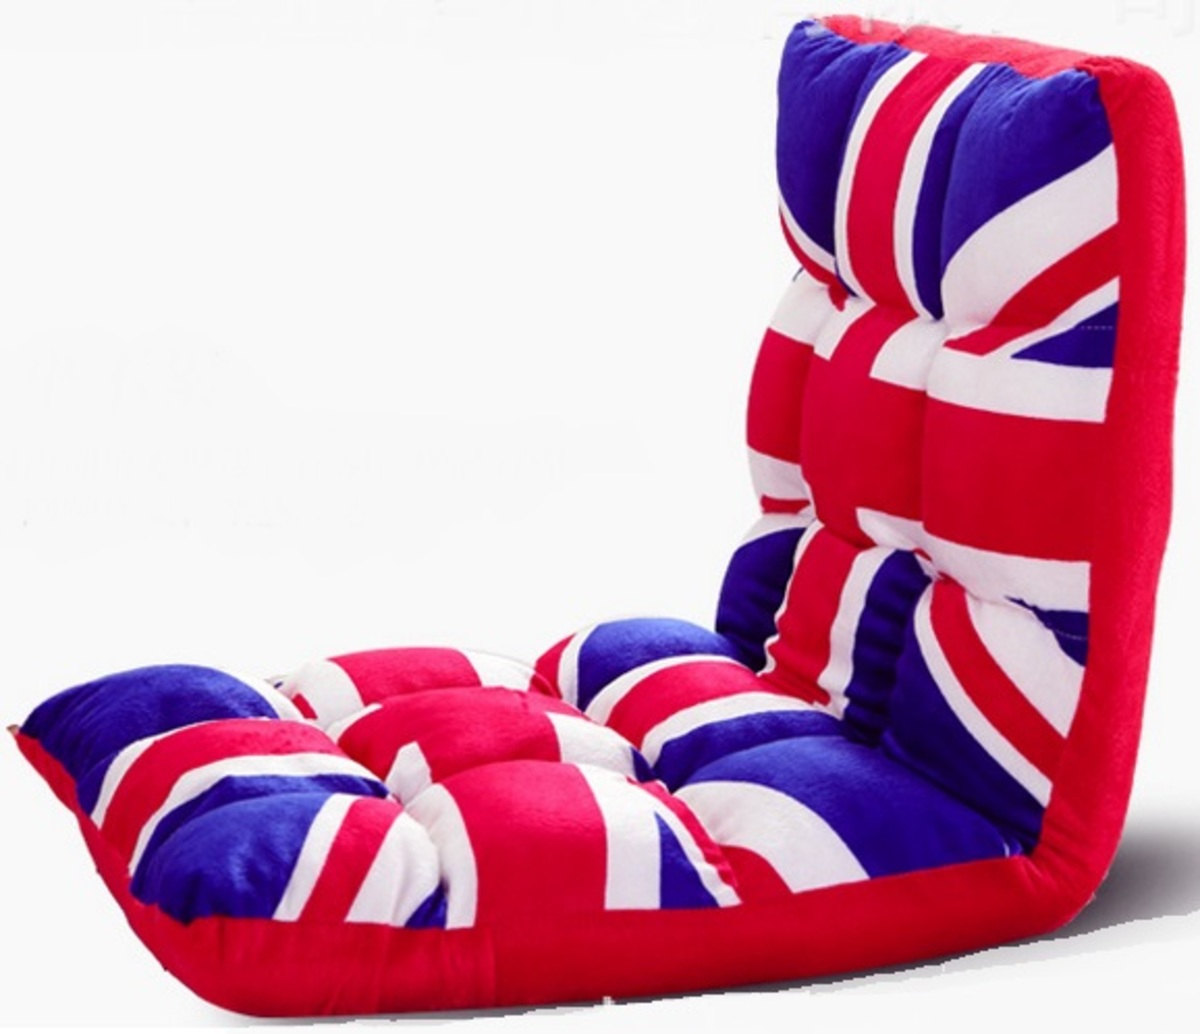 The Union Jack lazy sofa (GBR)